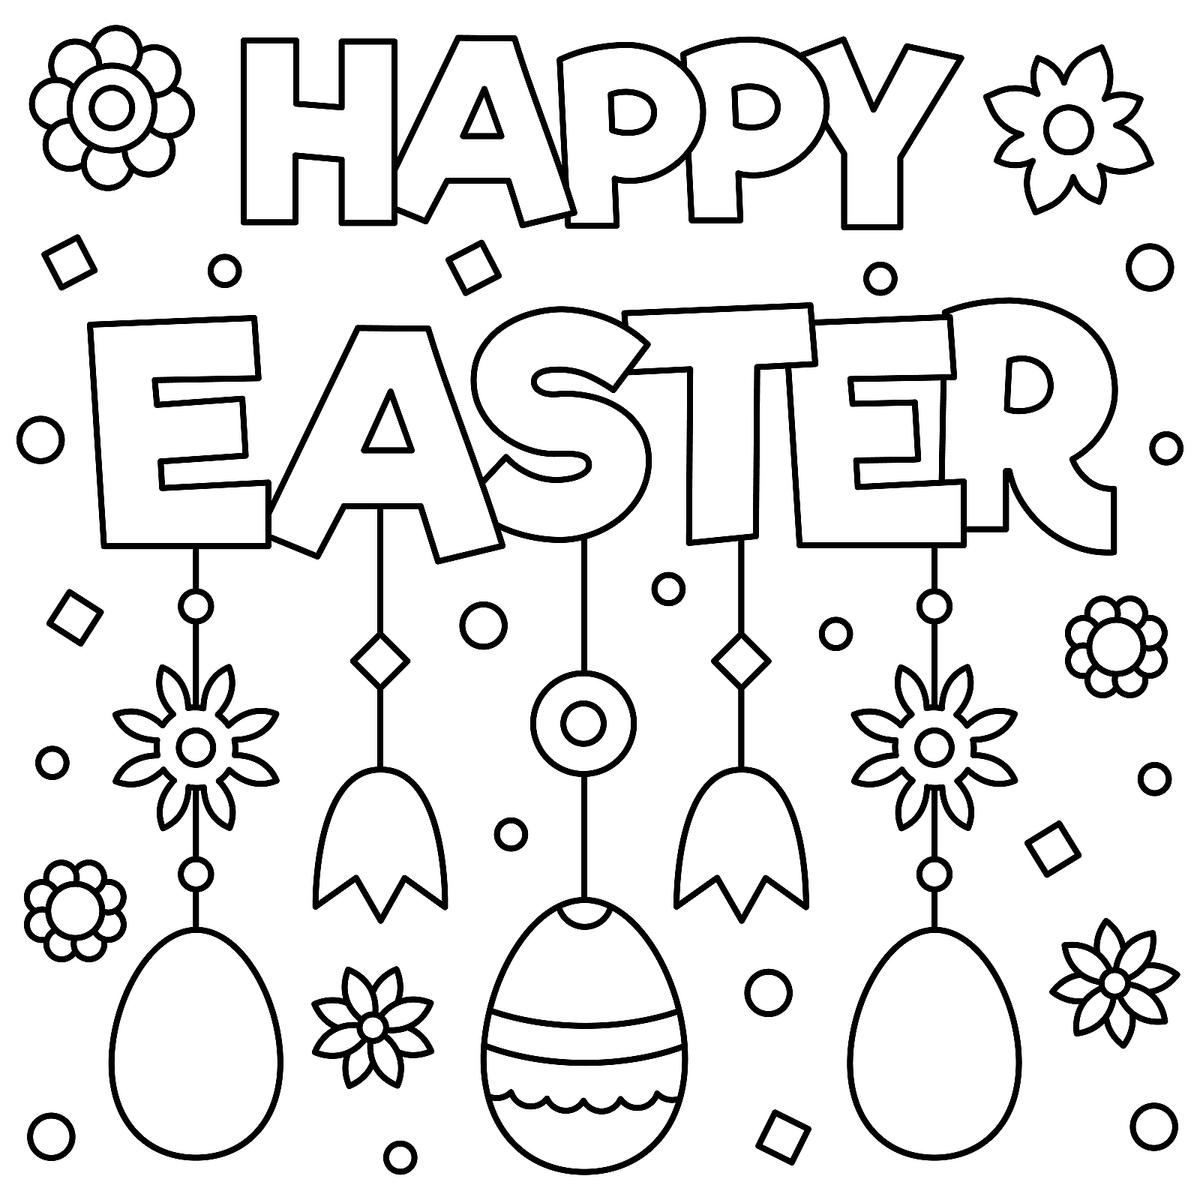 easter cards colouring happy easter card coloring page free printable coloring colouring easter cards